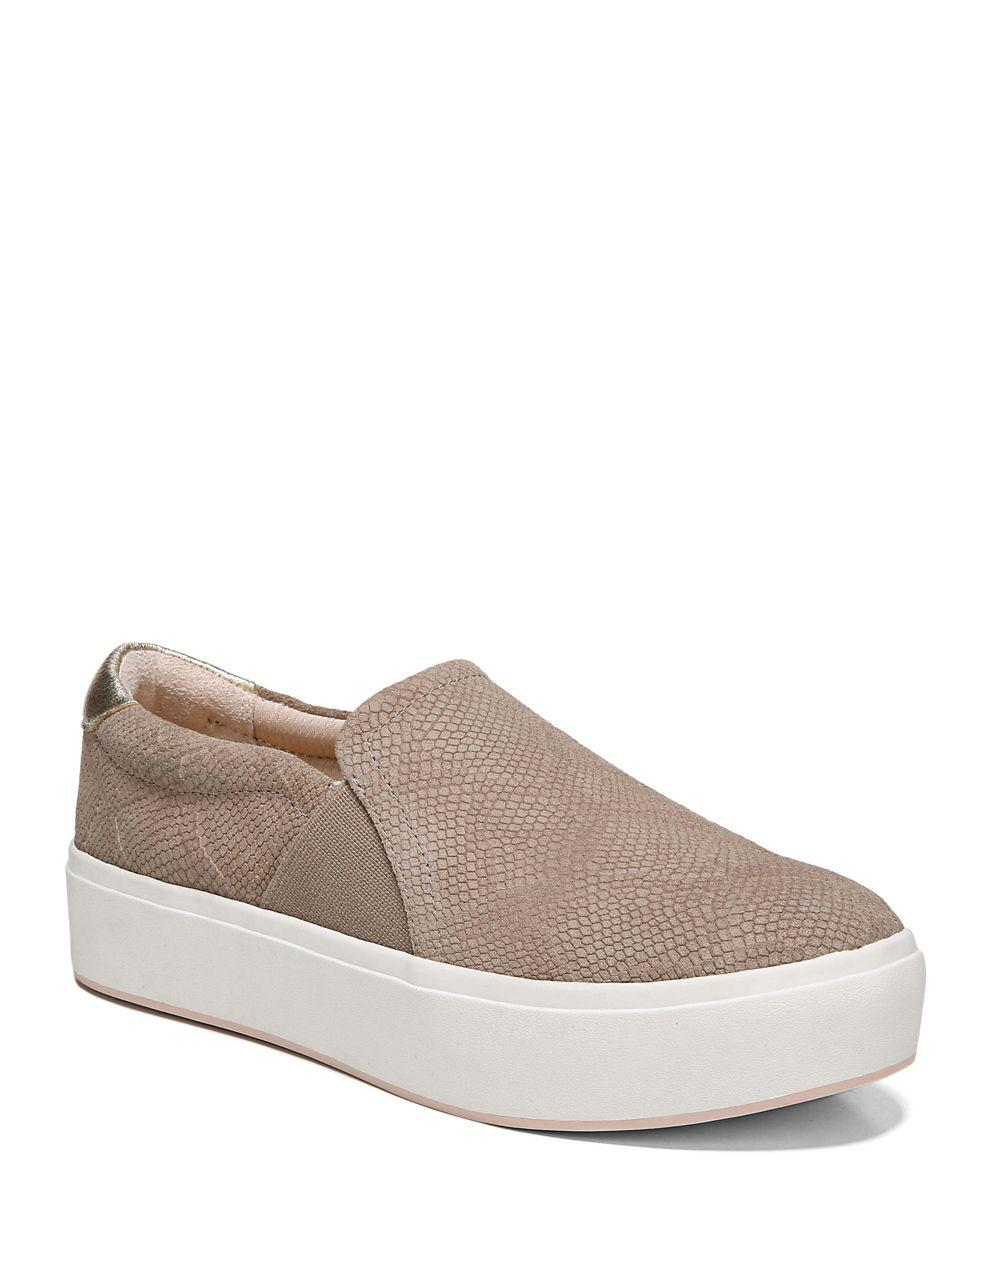 Abbot Perforated Suede Slip-On Sneakers Qumr0C